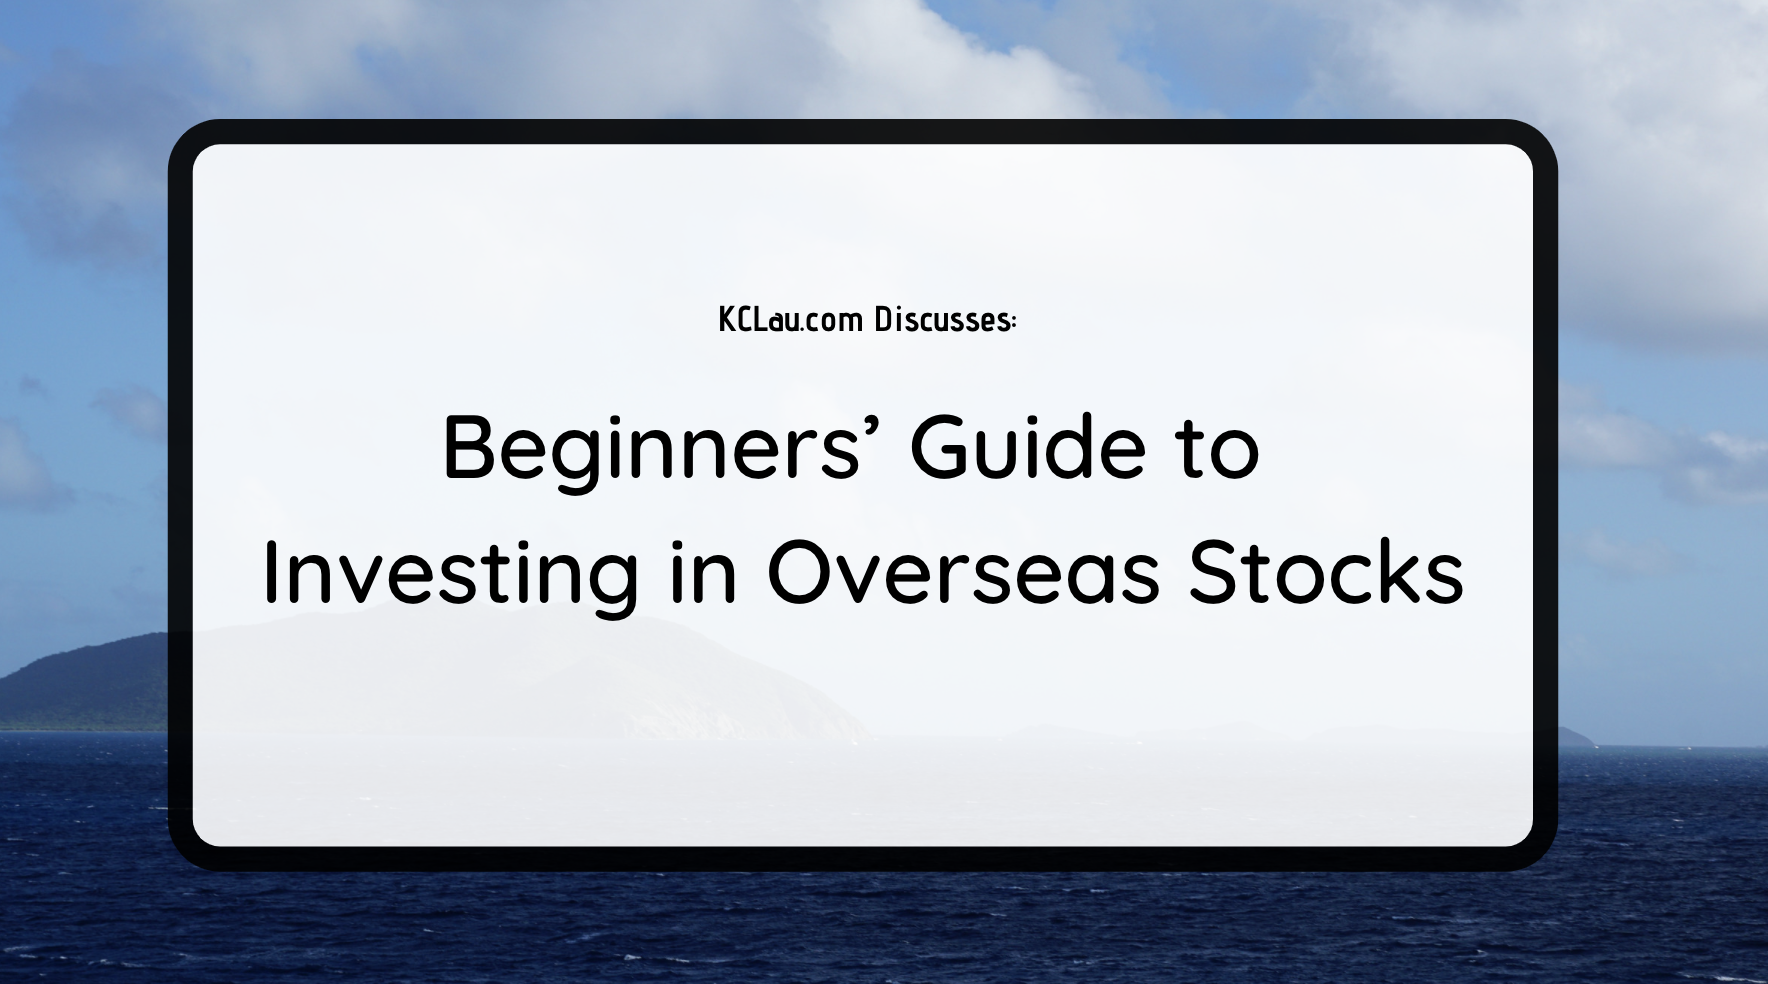 Beginners' Guide to Investing in Overseas Stocks